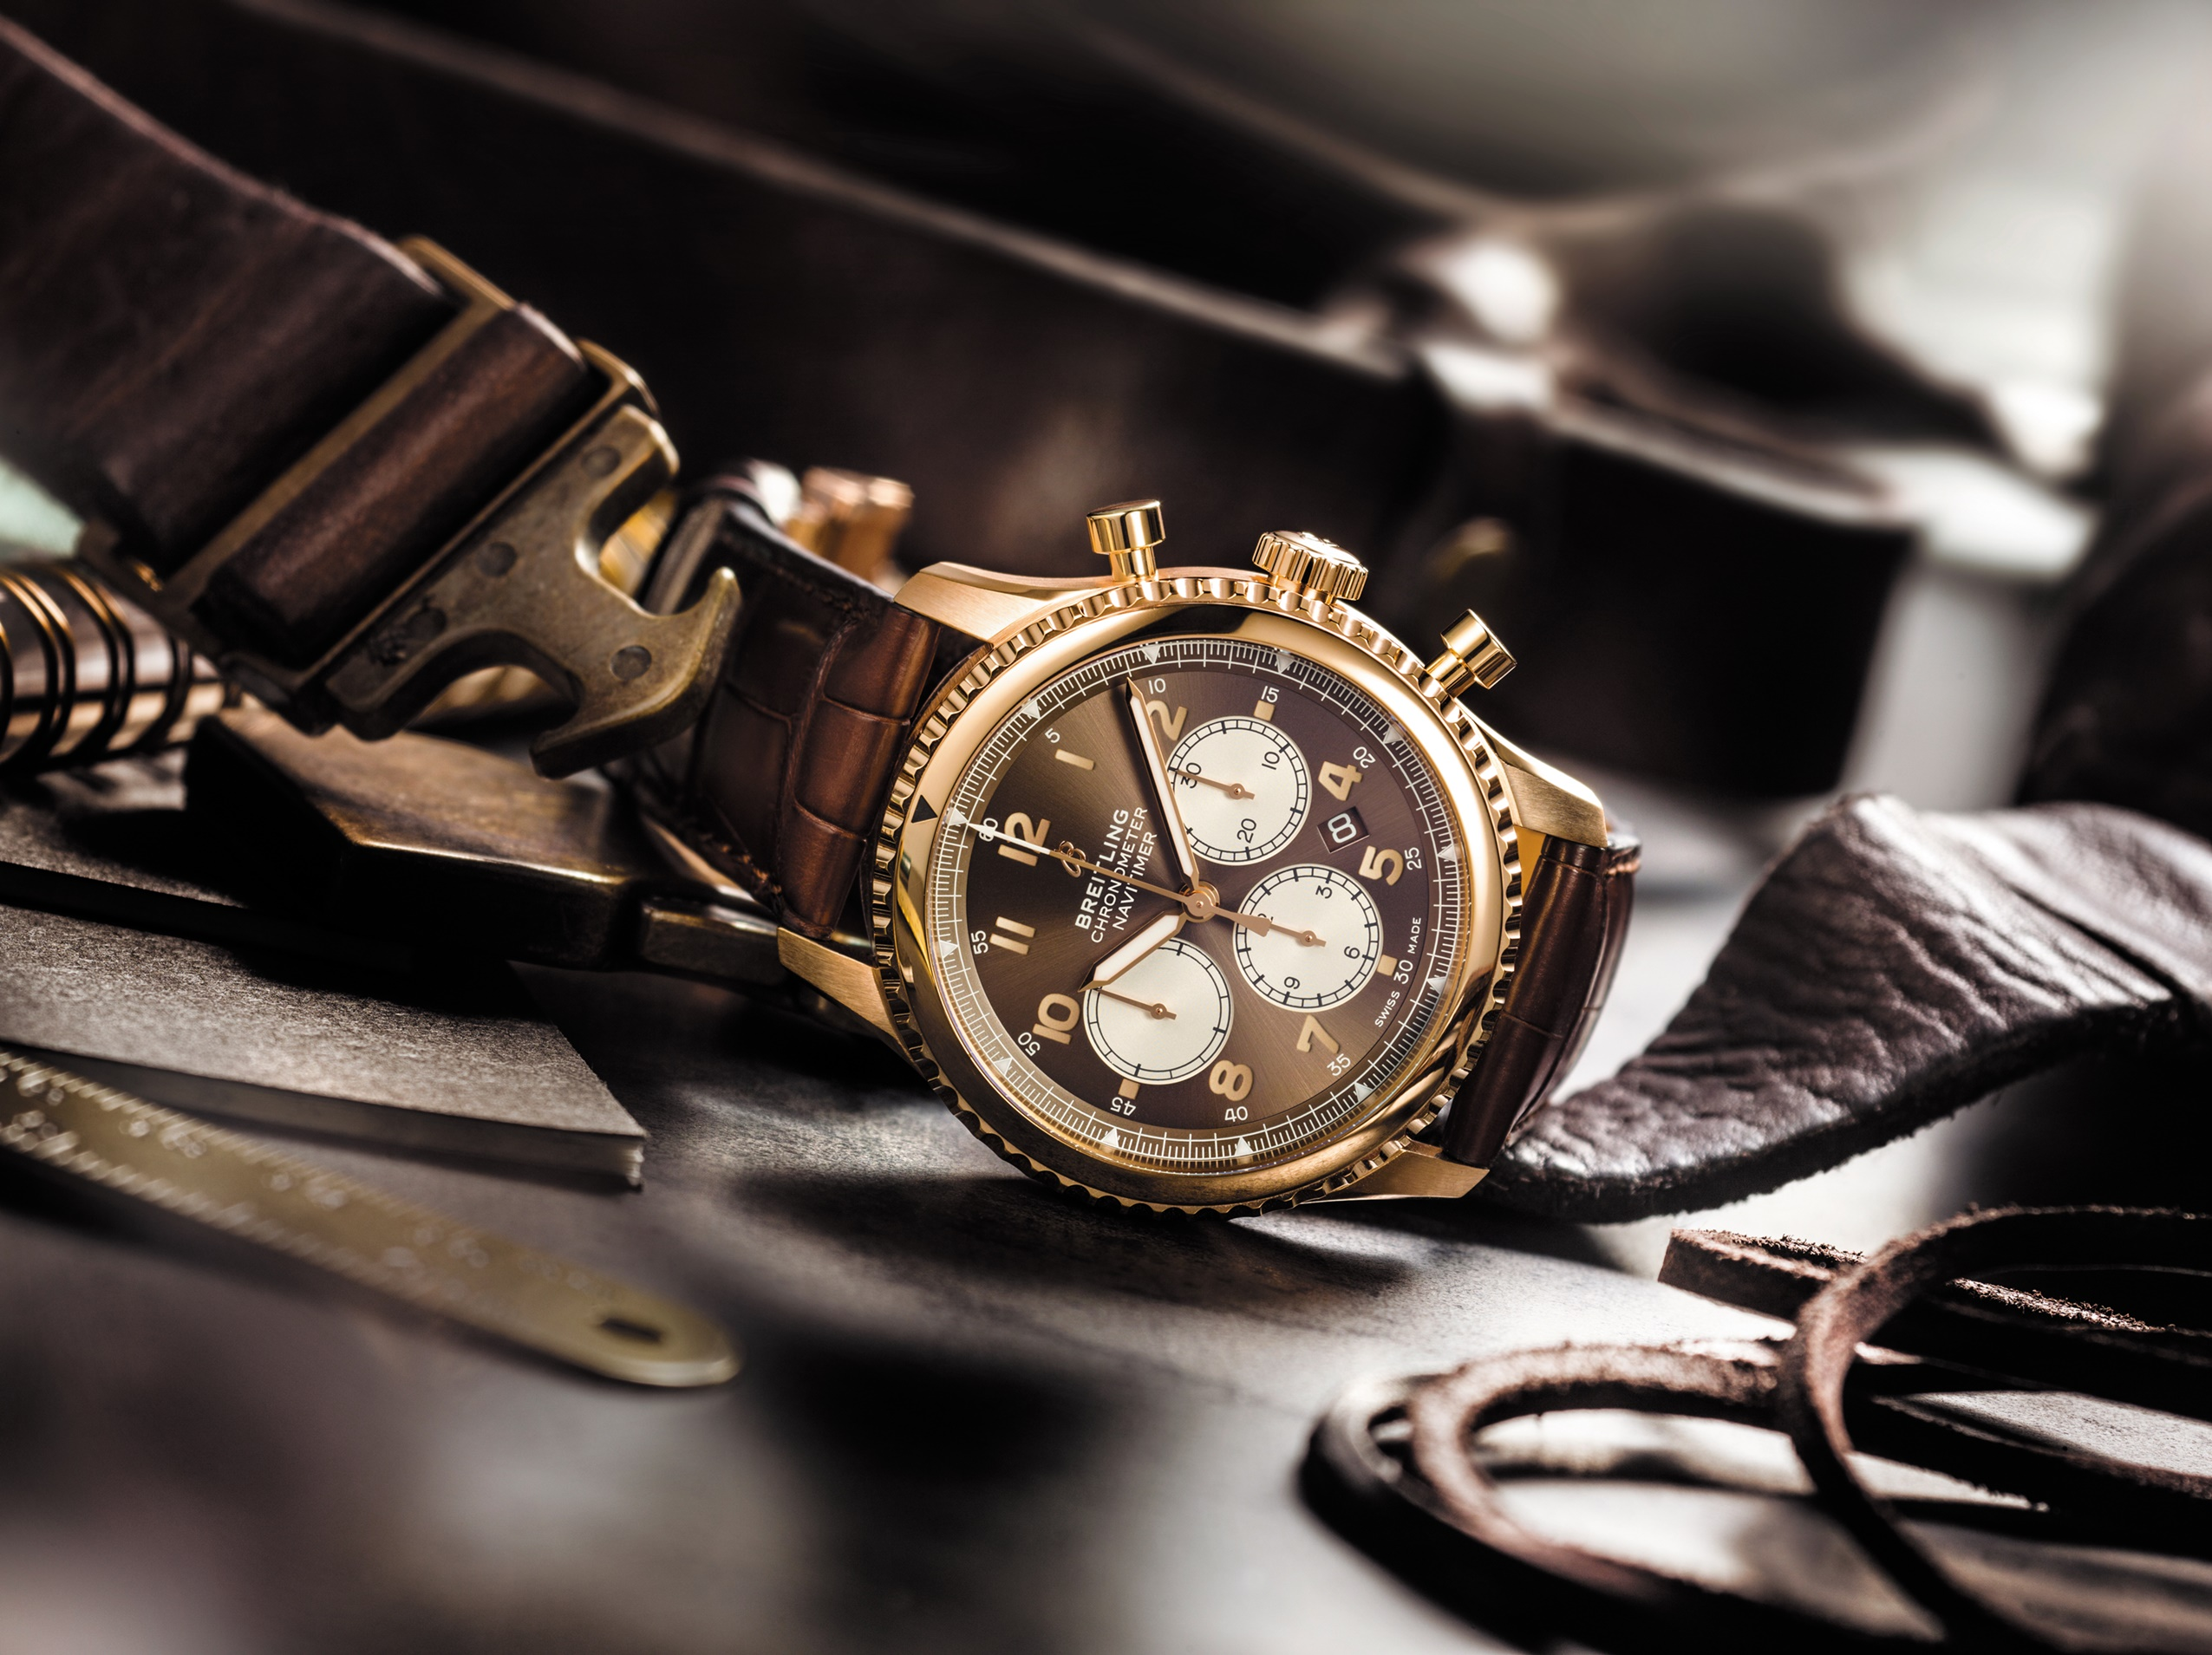 Breitling's Navitimer 8 tribute collection has finally arrived